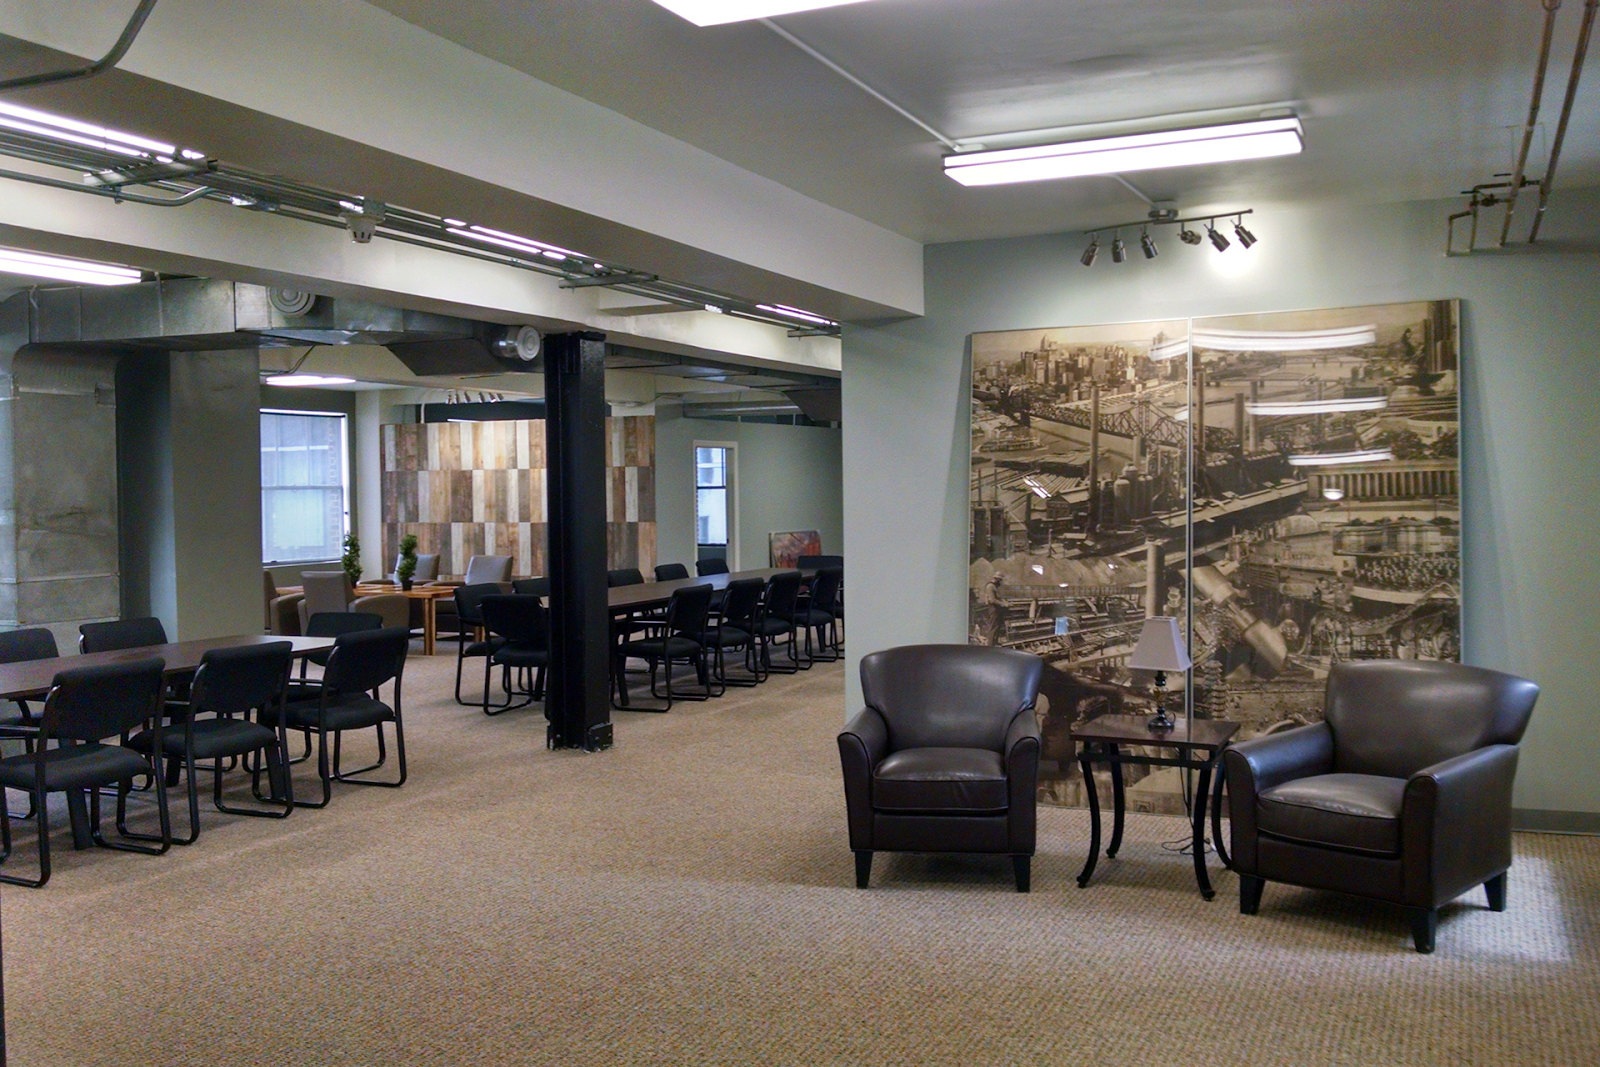 club level coworking space interior with plenty of tables and chairs